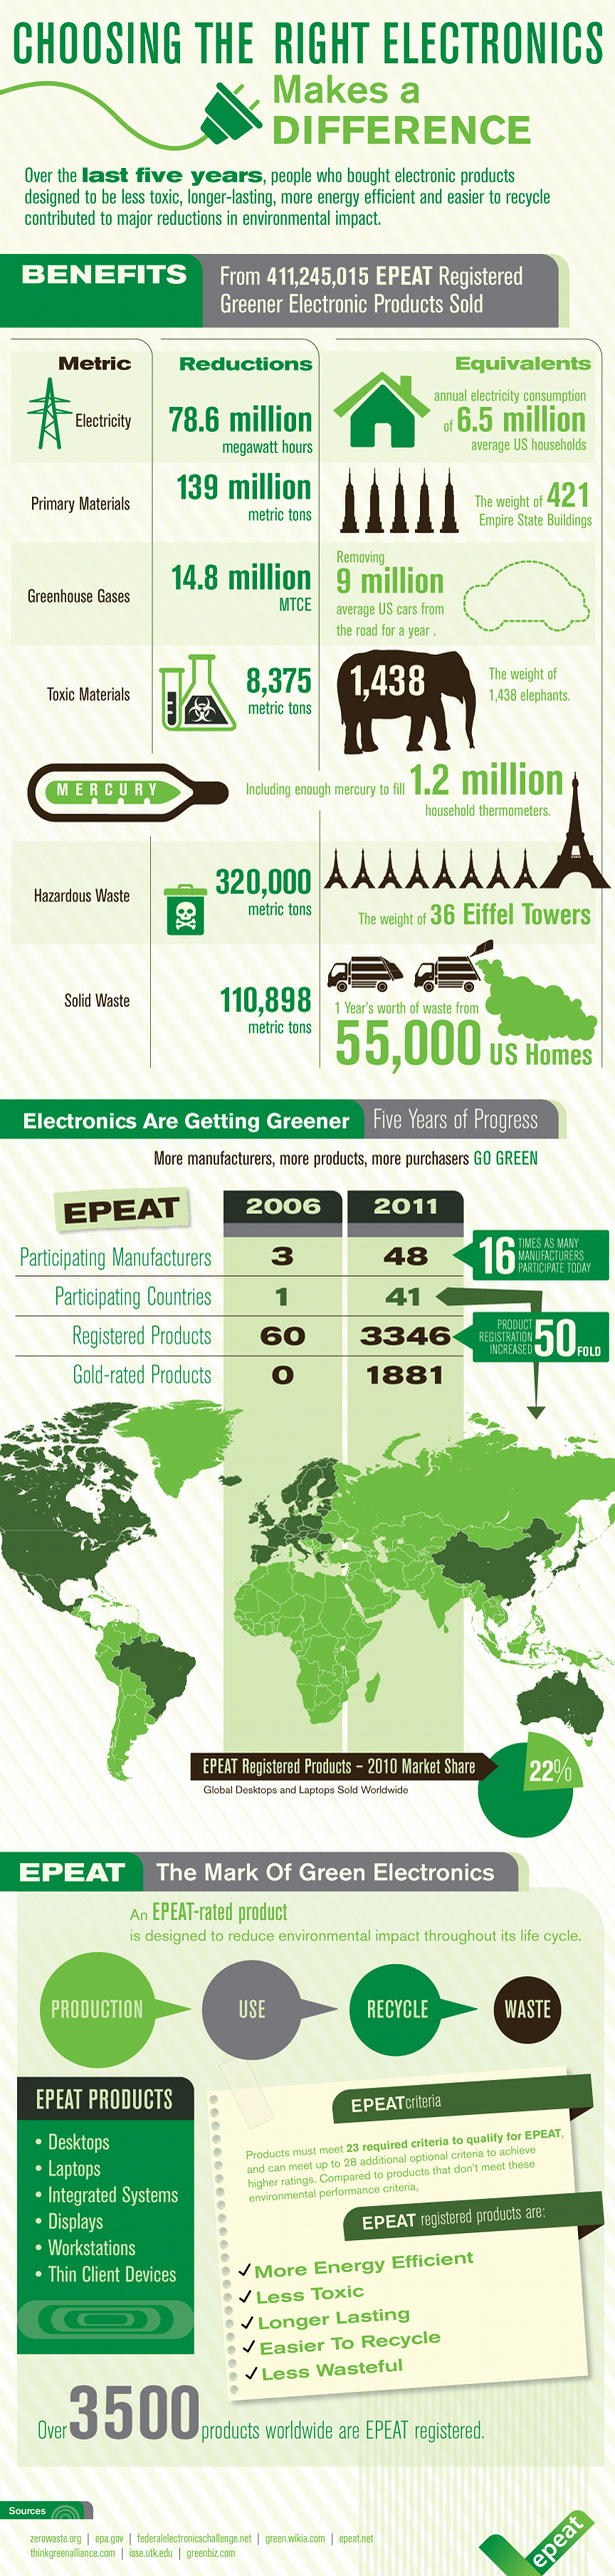 EPEAT info